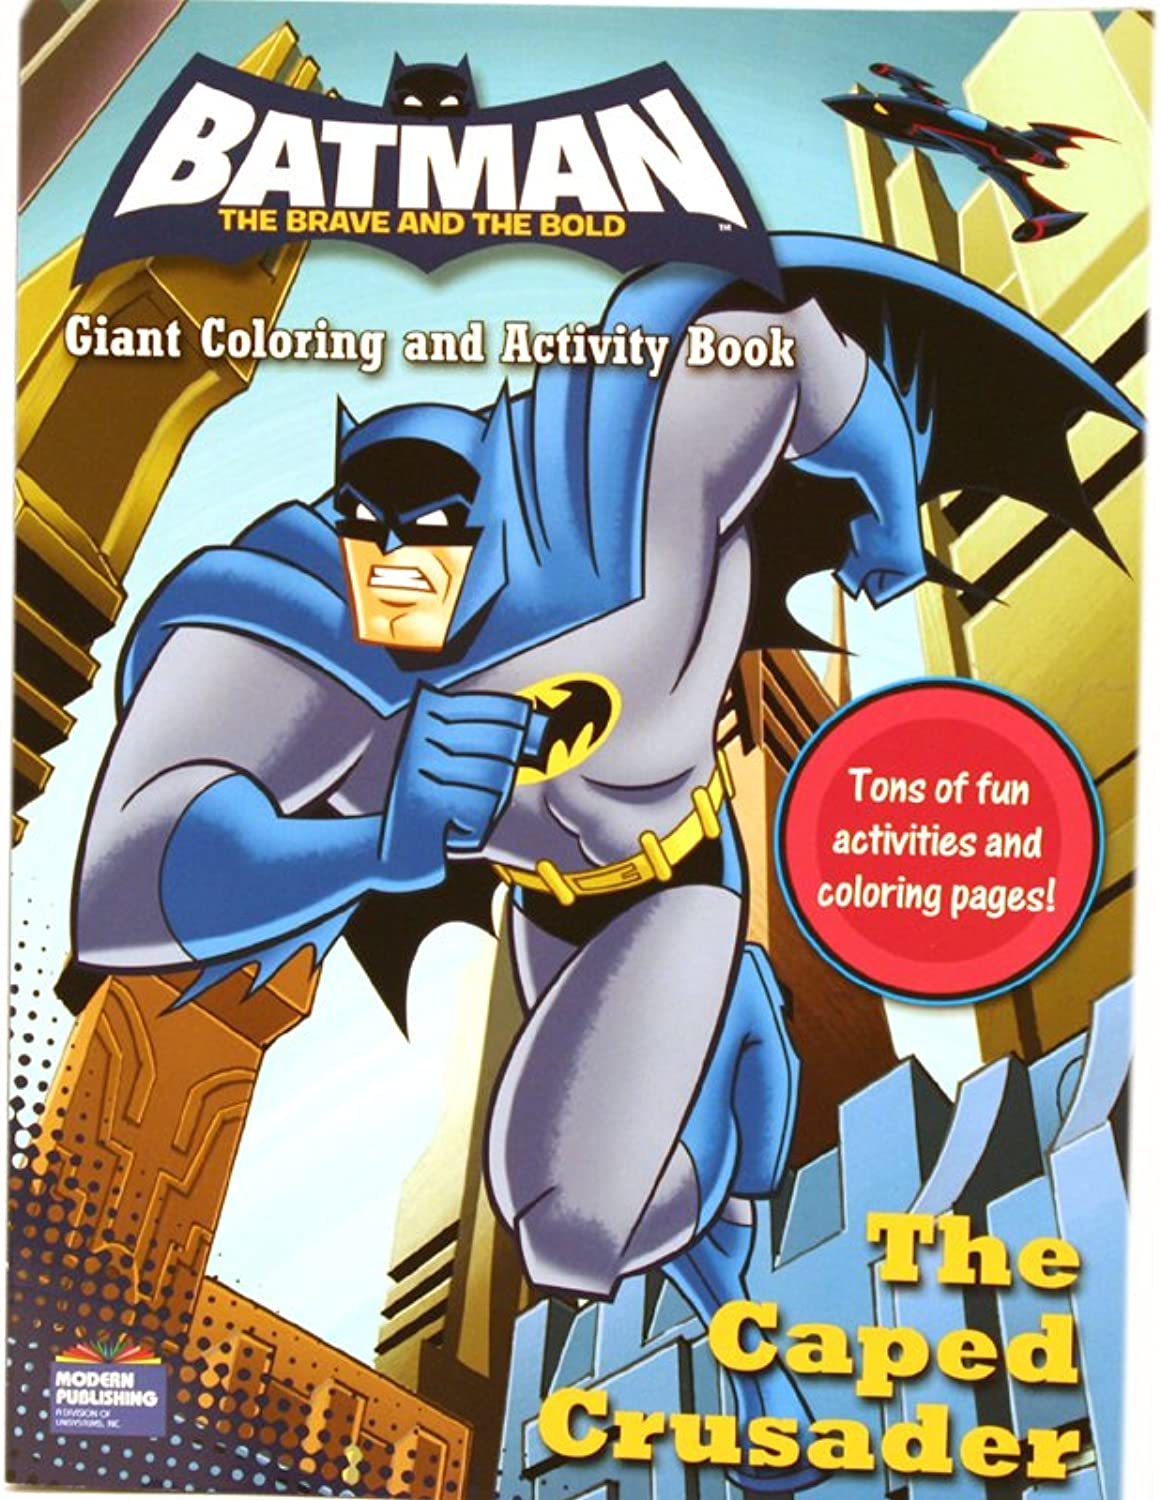 Batman the Brave and the Bold Giant Farbeing and Activity Books (set of 2) by DC Comics B002WDIQAO | Deutschland